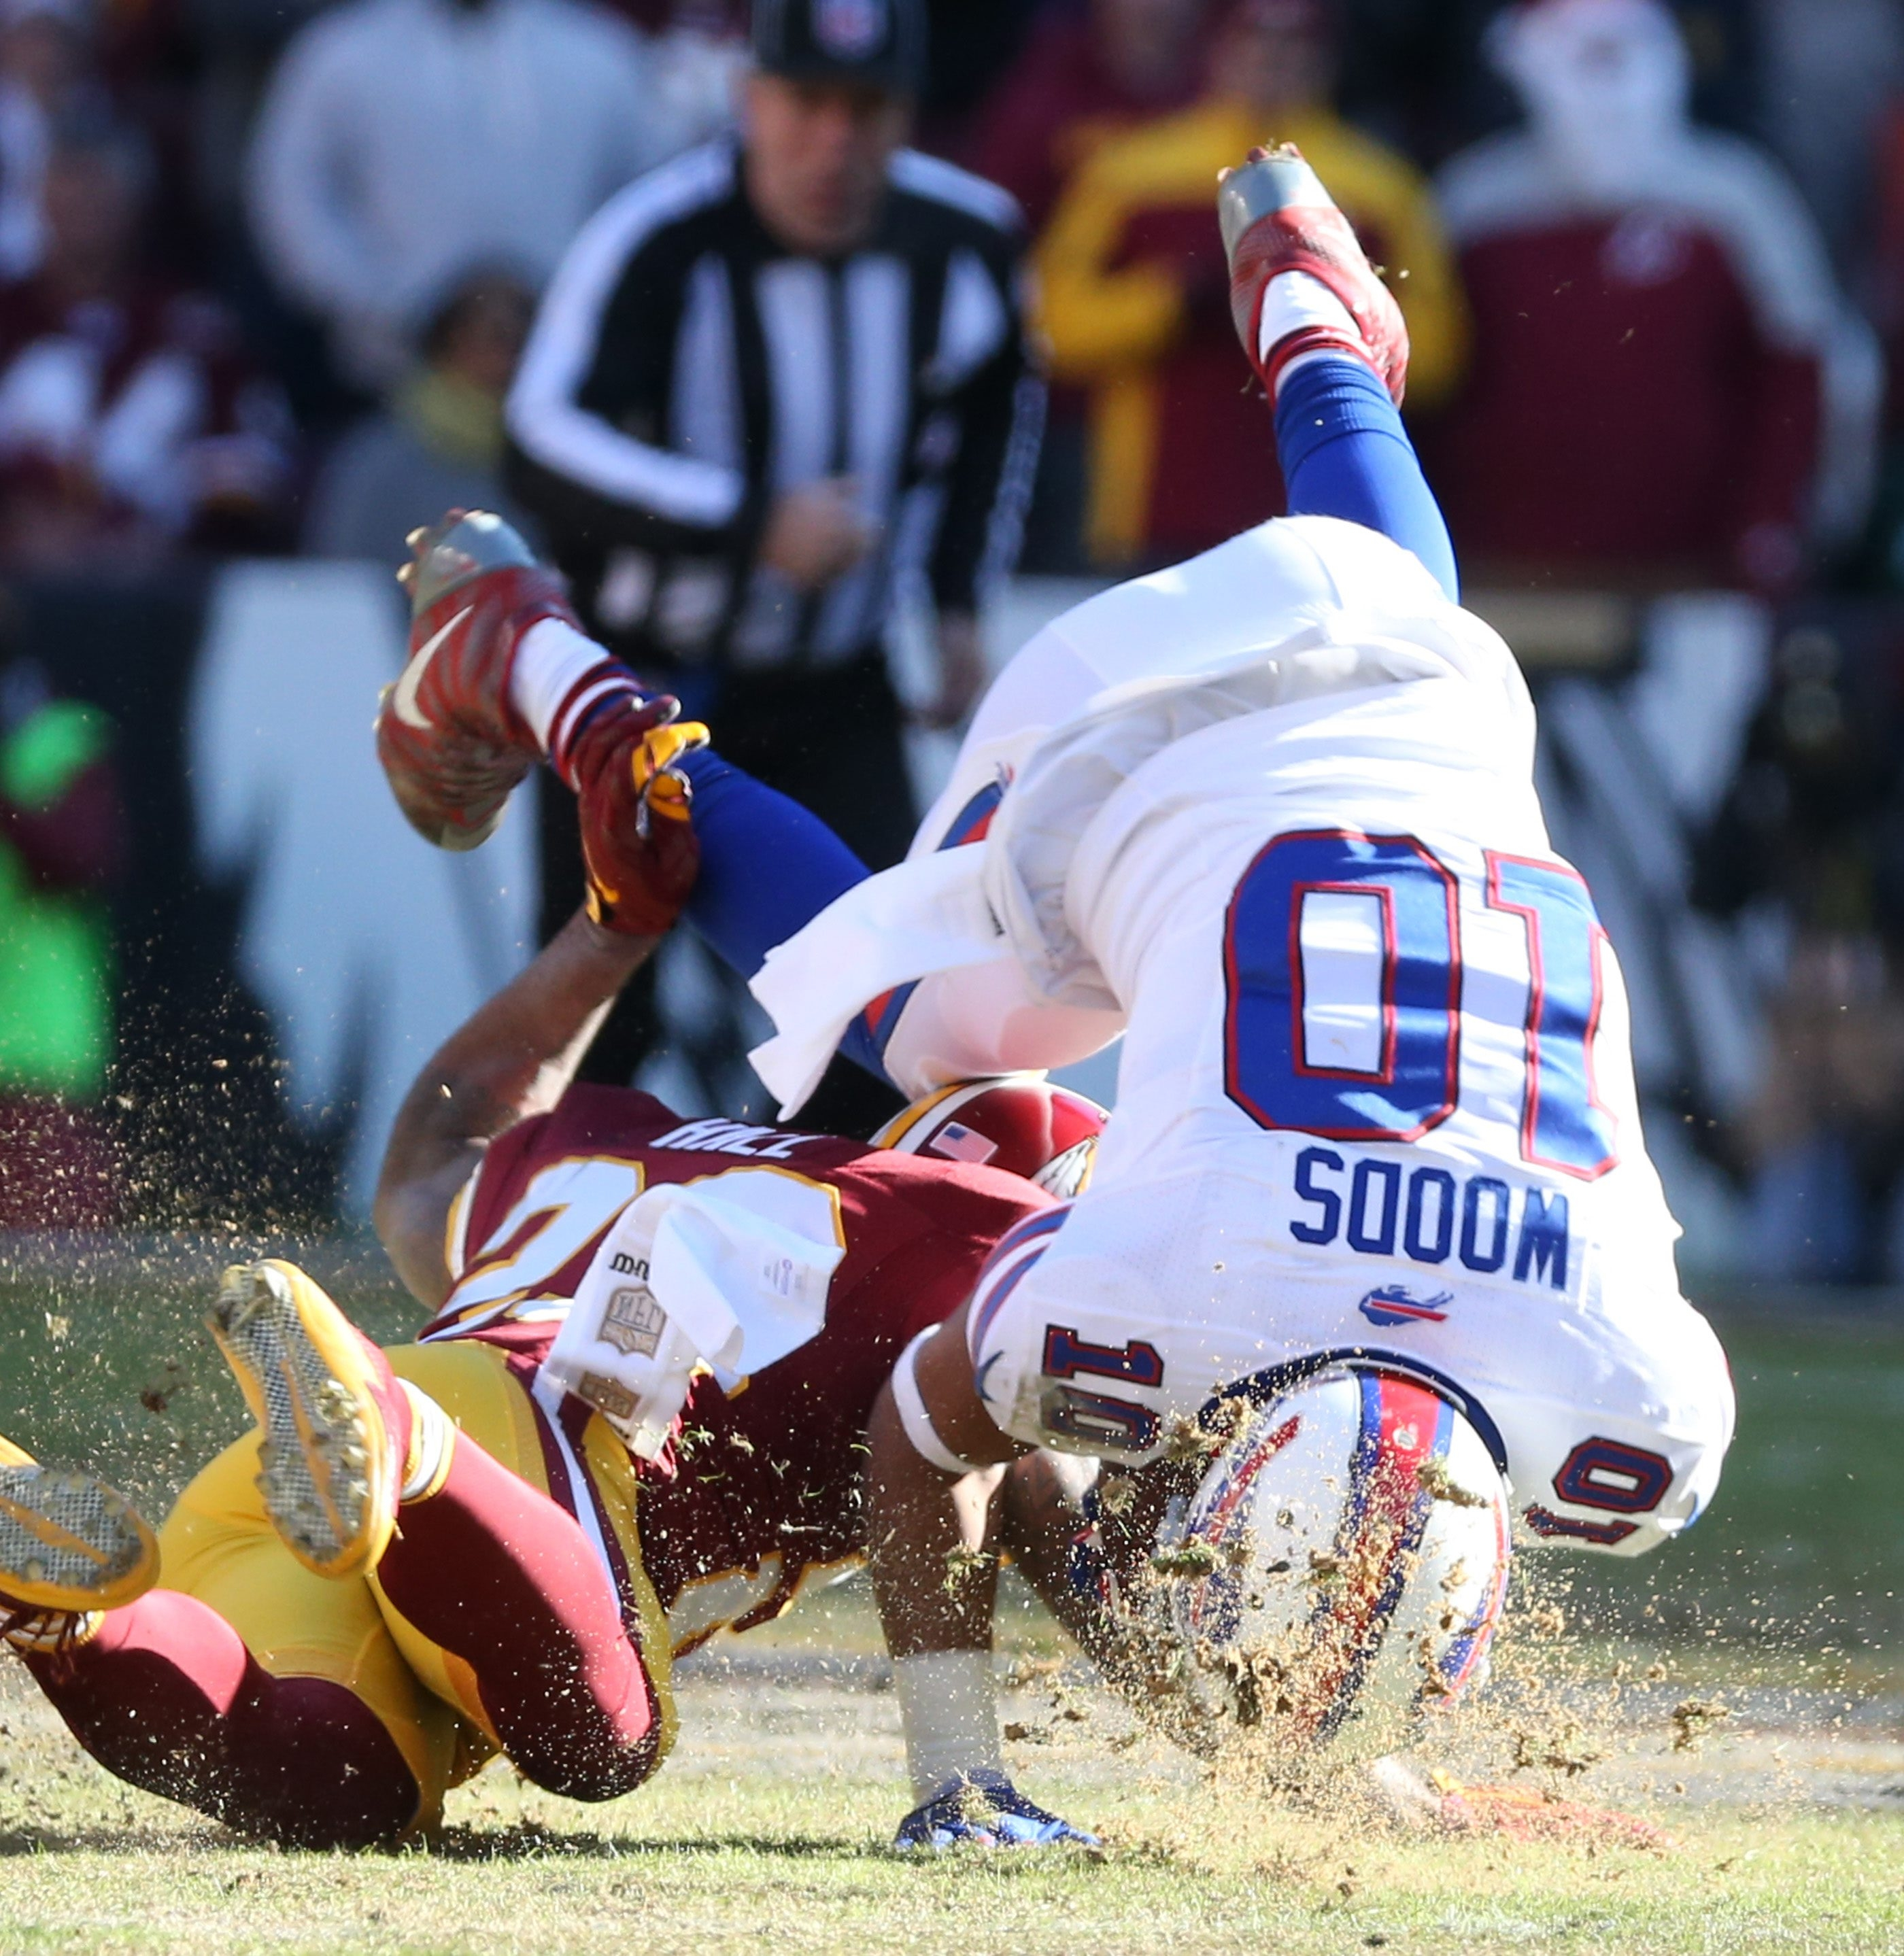 Bills wide receiver Robert Woods tumbles while making a catch against Redskins cornerback DeAngelo Hall during the third quarter. Woods finished with four catches for 44 yards.   in the third quarter at Fed Ex field in Landover, Md on Sunday, Dec. 20, 2015.  (James P. McCoy/ Buffalo News)